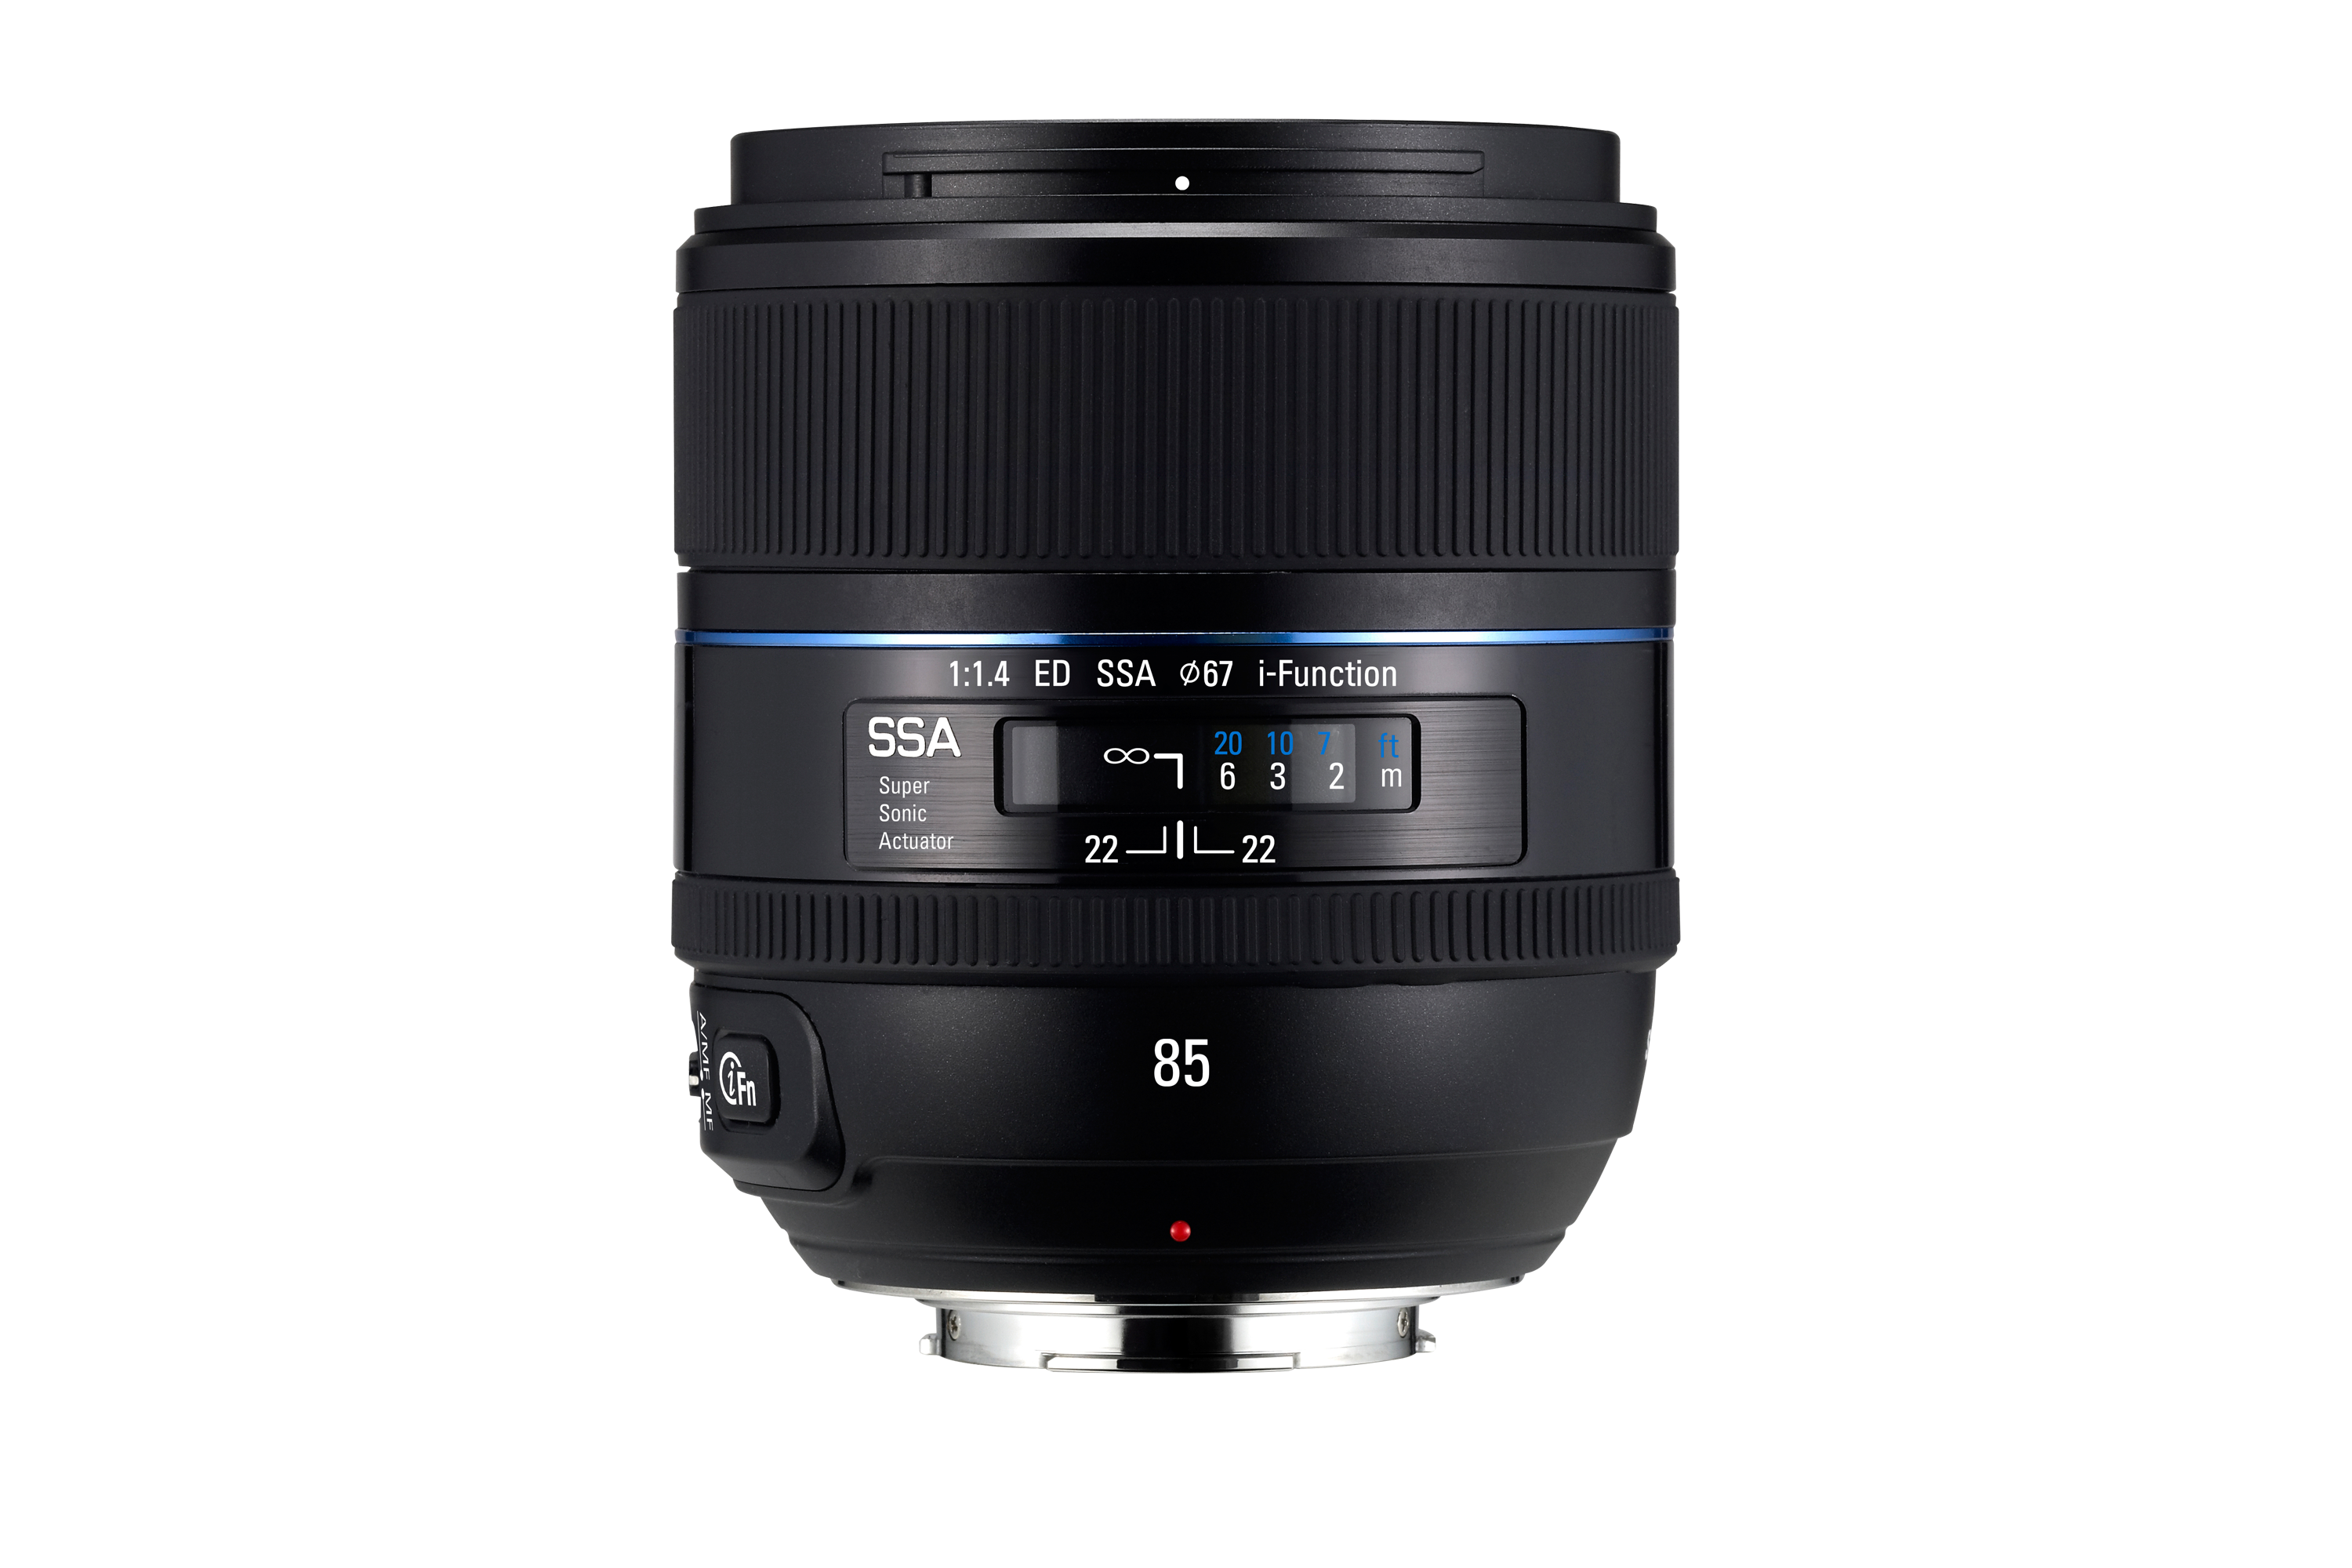 85mm f1.4 ED SSA Telephoto Lens